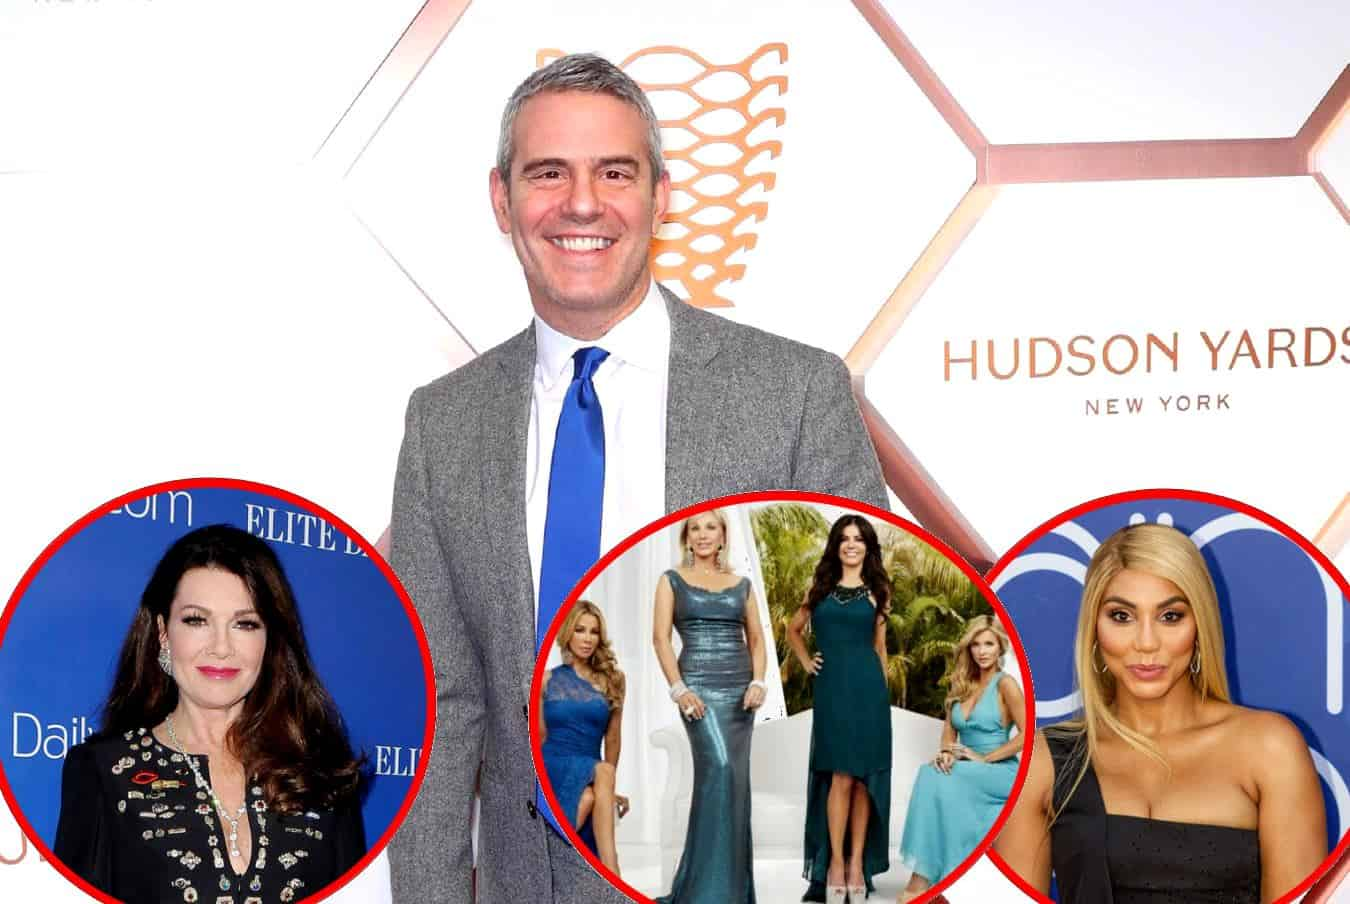 Does Andy Cohen Think Lisa Vanderpump Is Being Bullied by RHOBH Cast? Find Out, Plus He Reveals If RHOM Will Return and If Tamar Braxton Will Join RHOA